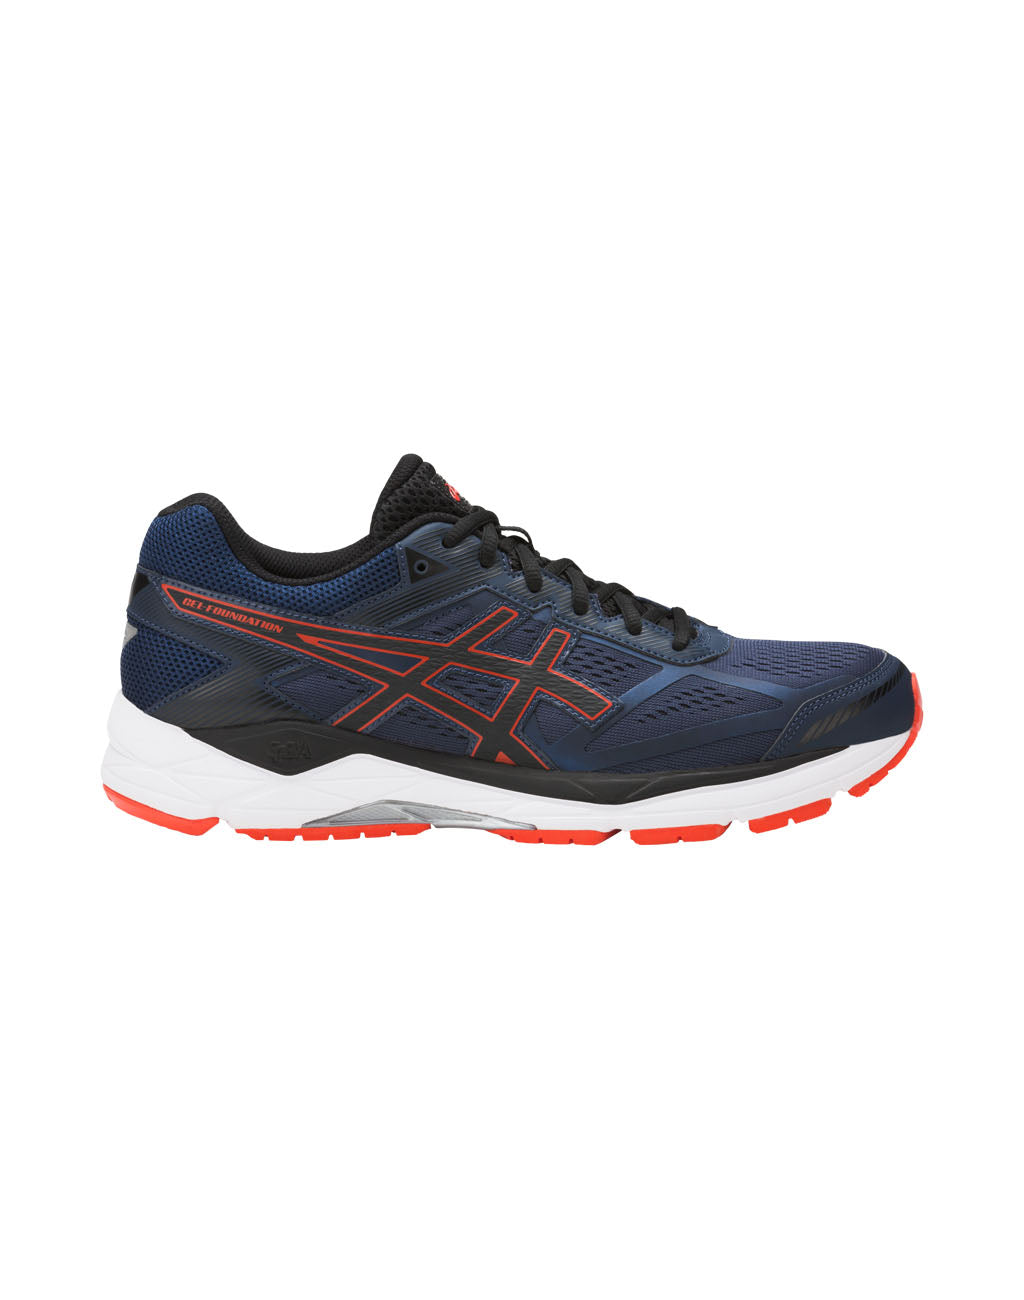 ASICS GEL-Foundation 12 (Men's)7.5_master_image